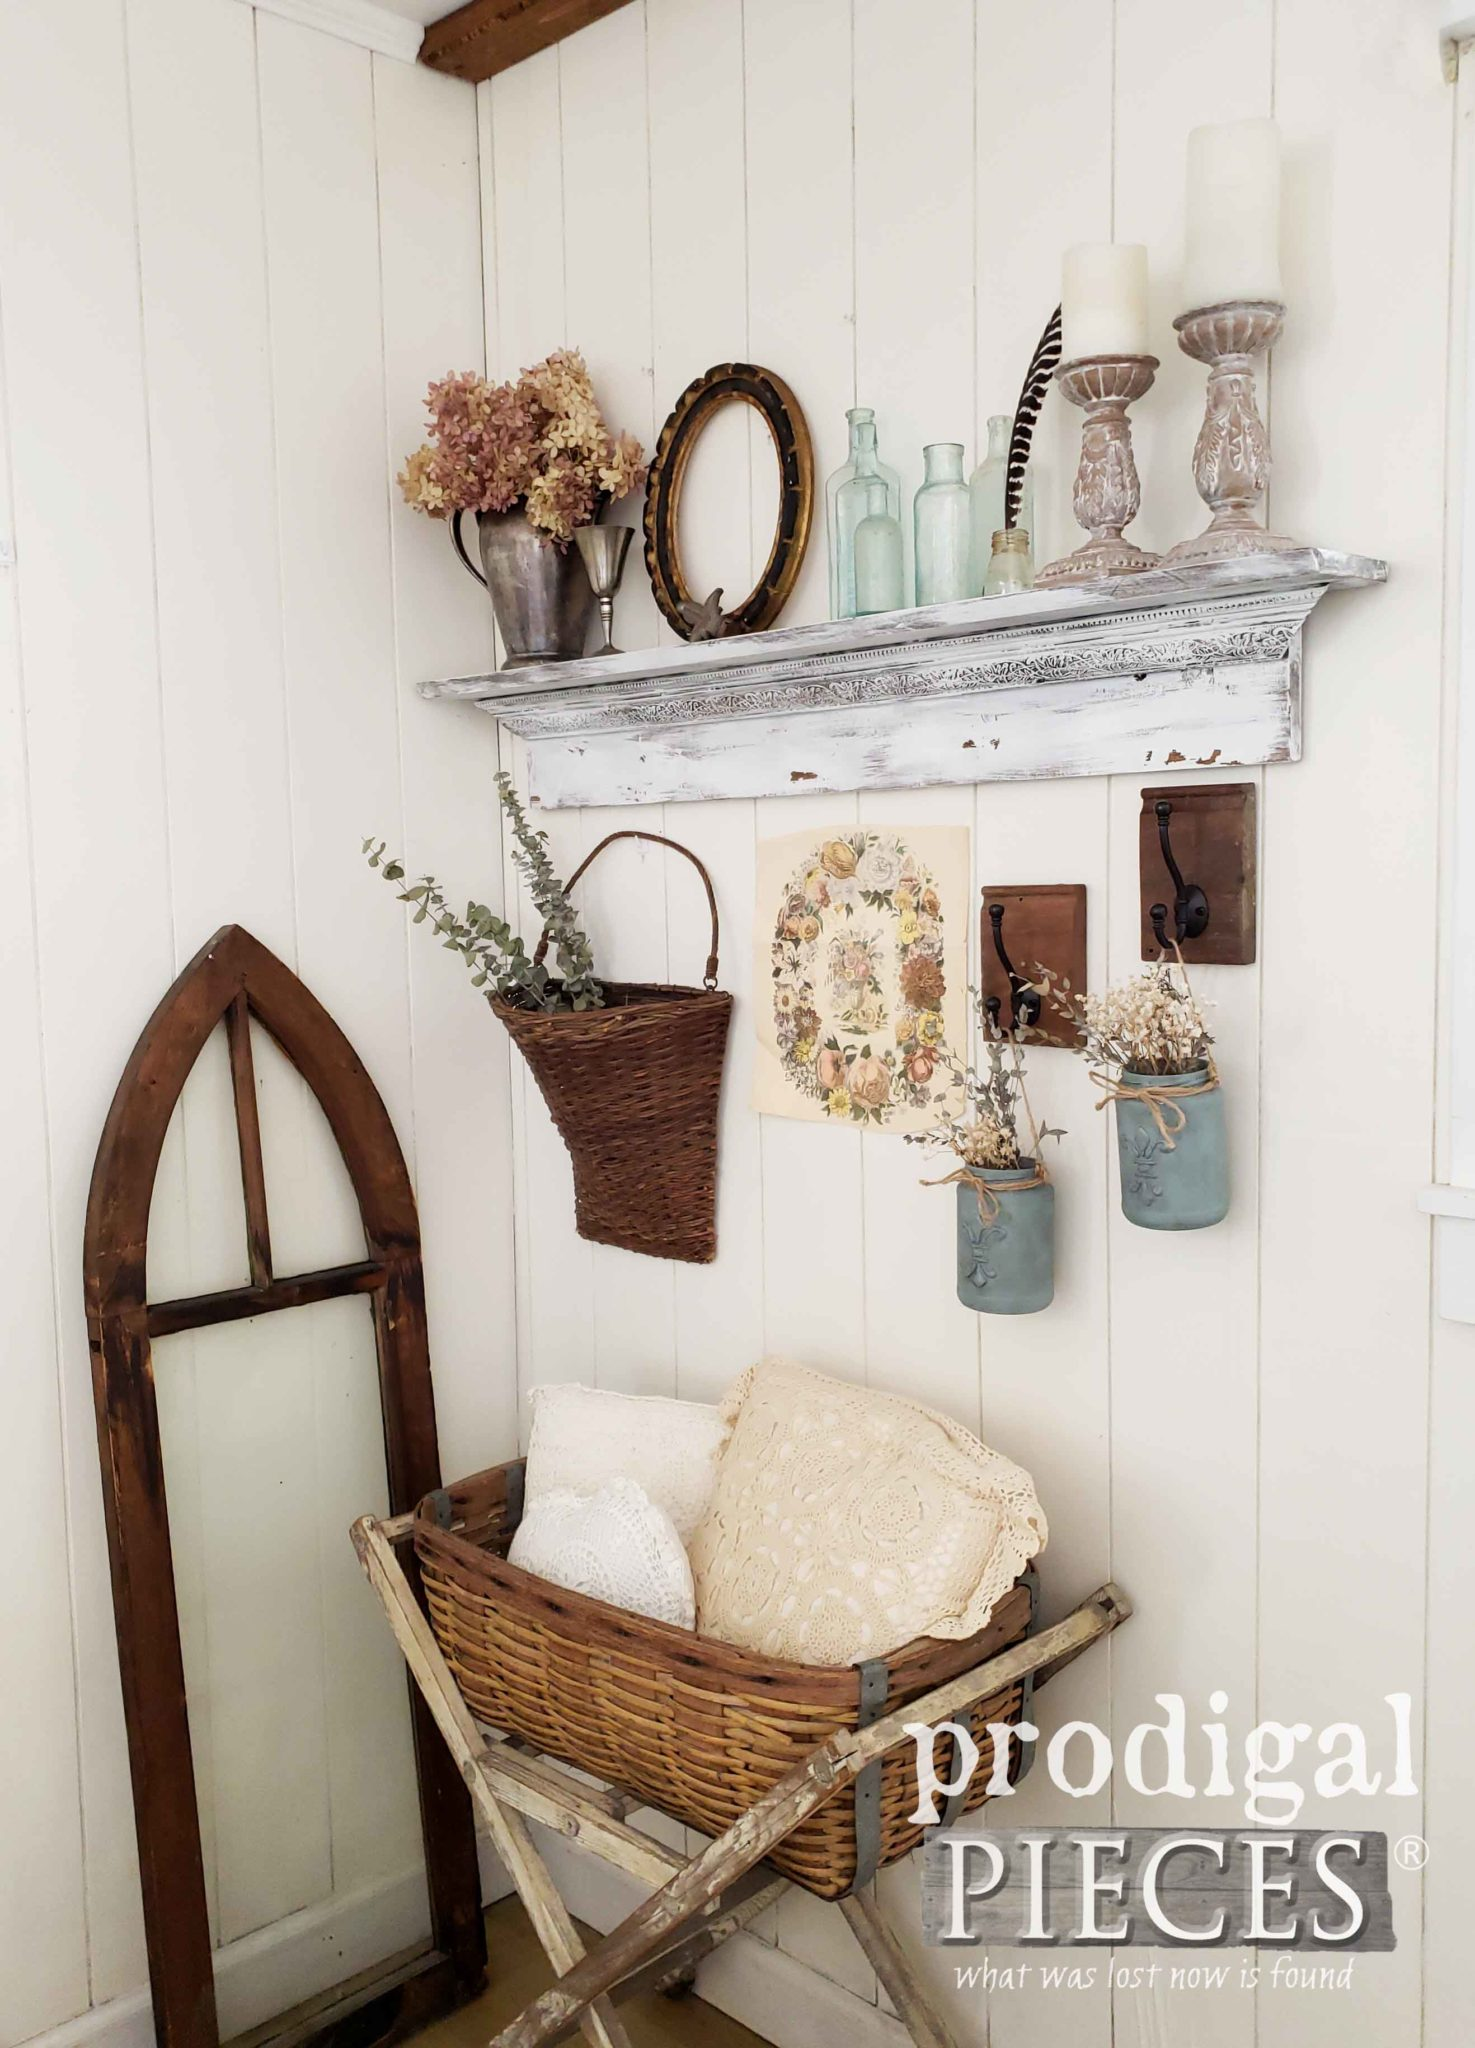 Farmhouse Style Decor with Collected Vignette Created by Larissa of Prodigal Pieces | prodigalpieces.com